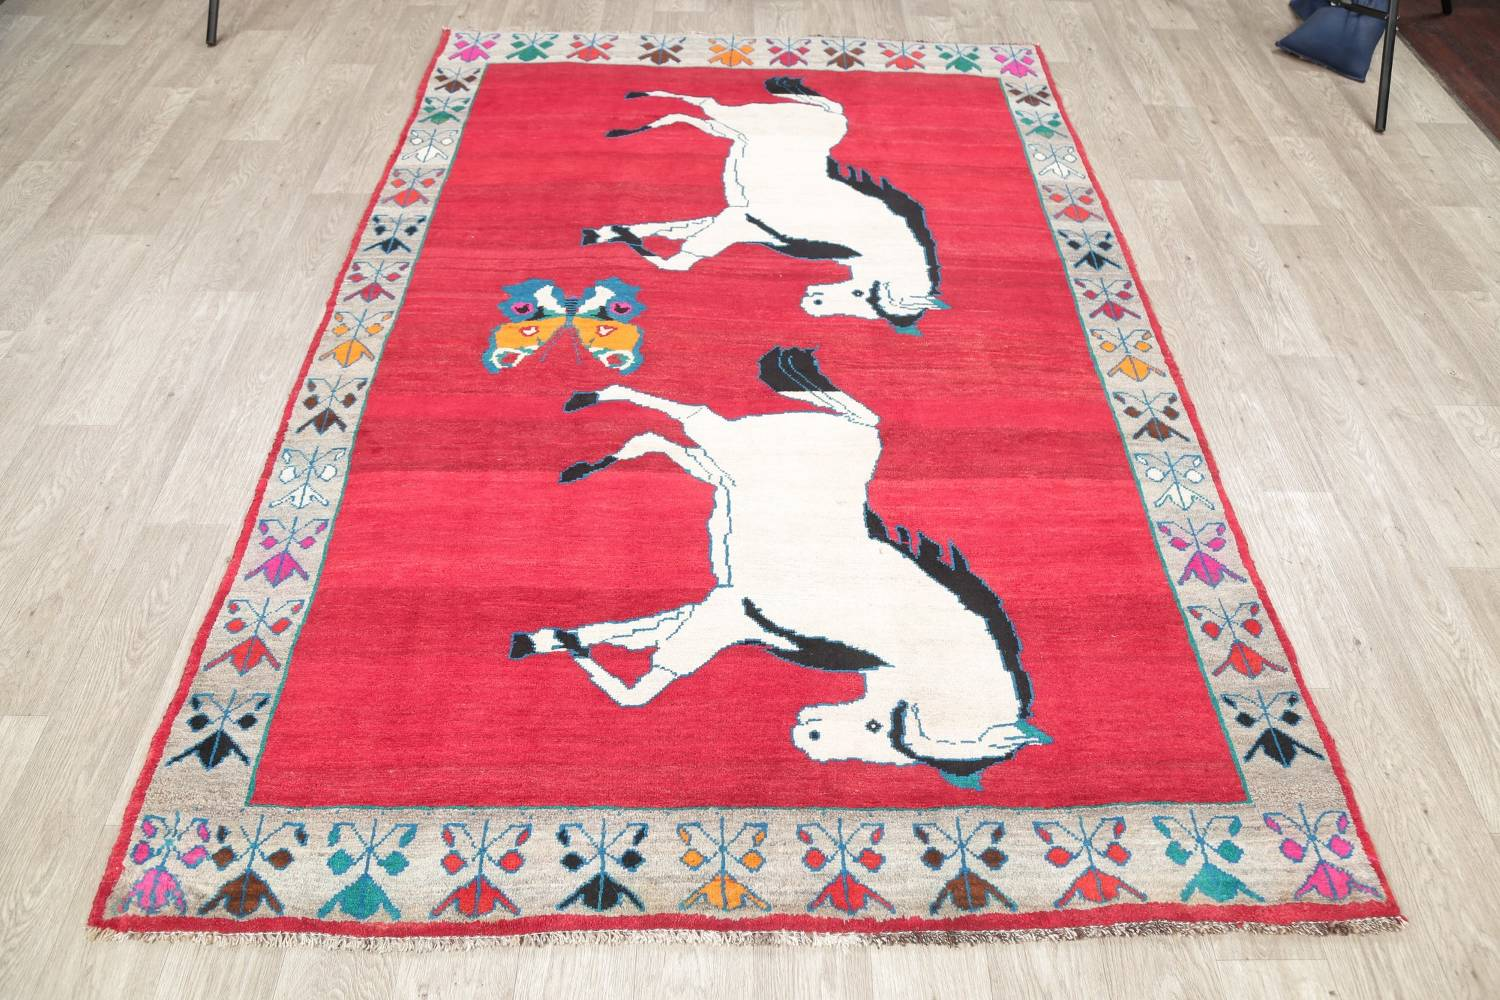 Animal Pictorial Gabbeh Persian Hand-Knotted 5x8 Wool Area Rug image 14